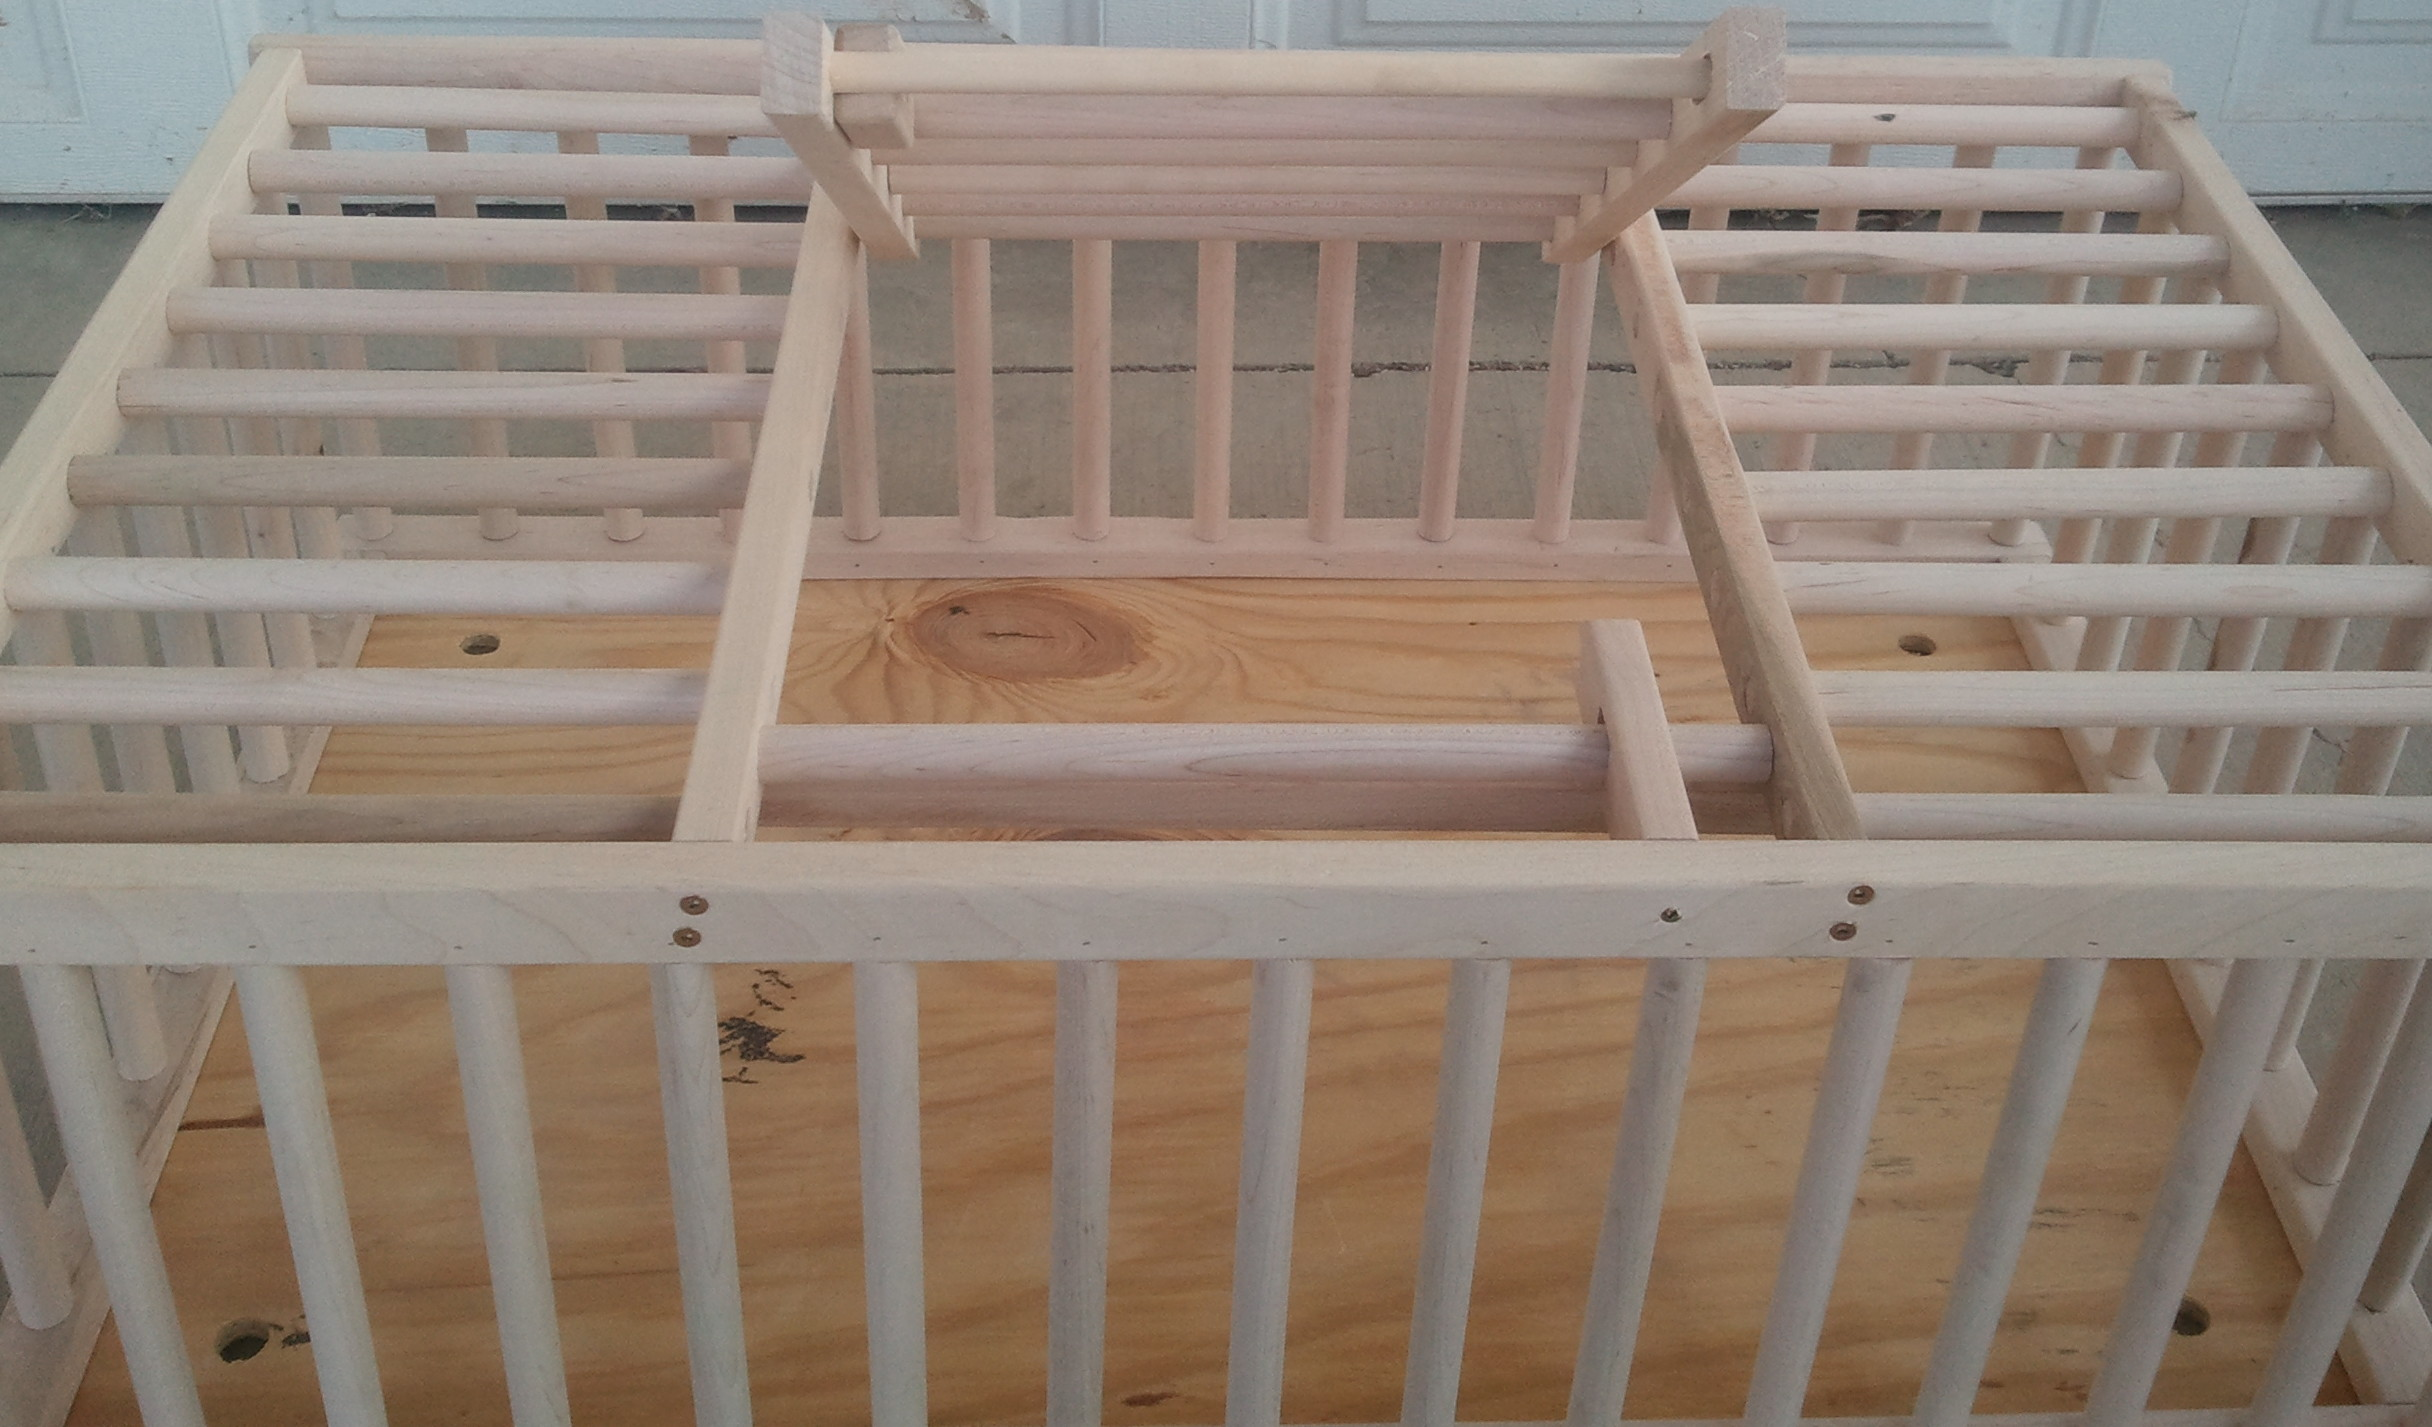 Wooden chicken crates badger 39 s millside farm for Wooden chicken crate plans